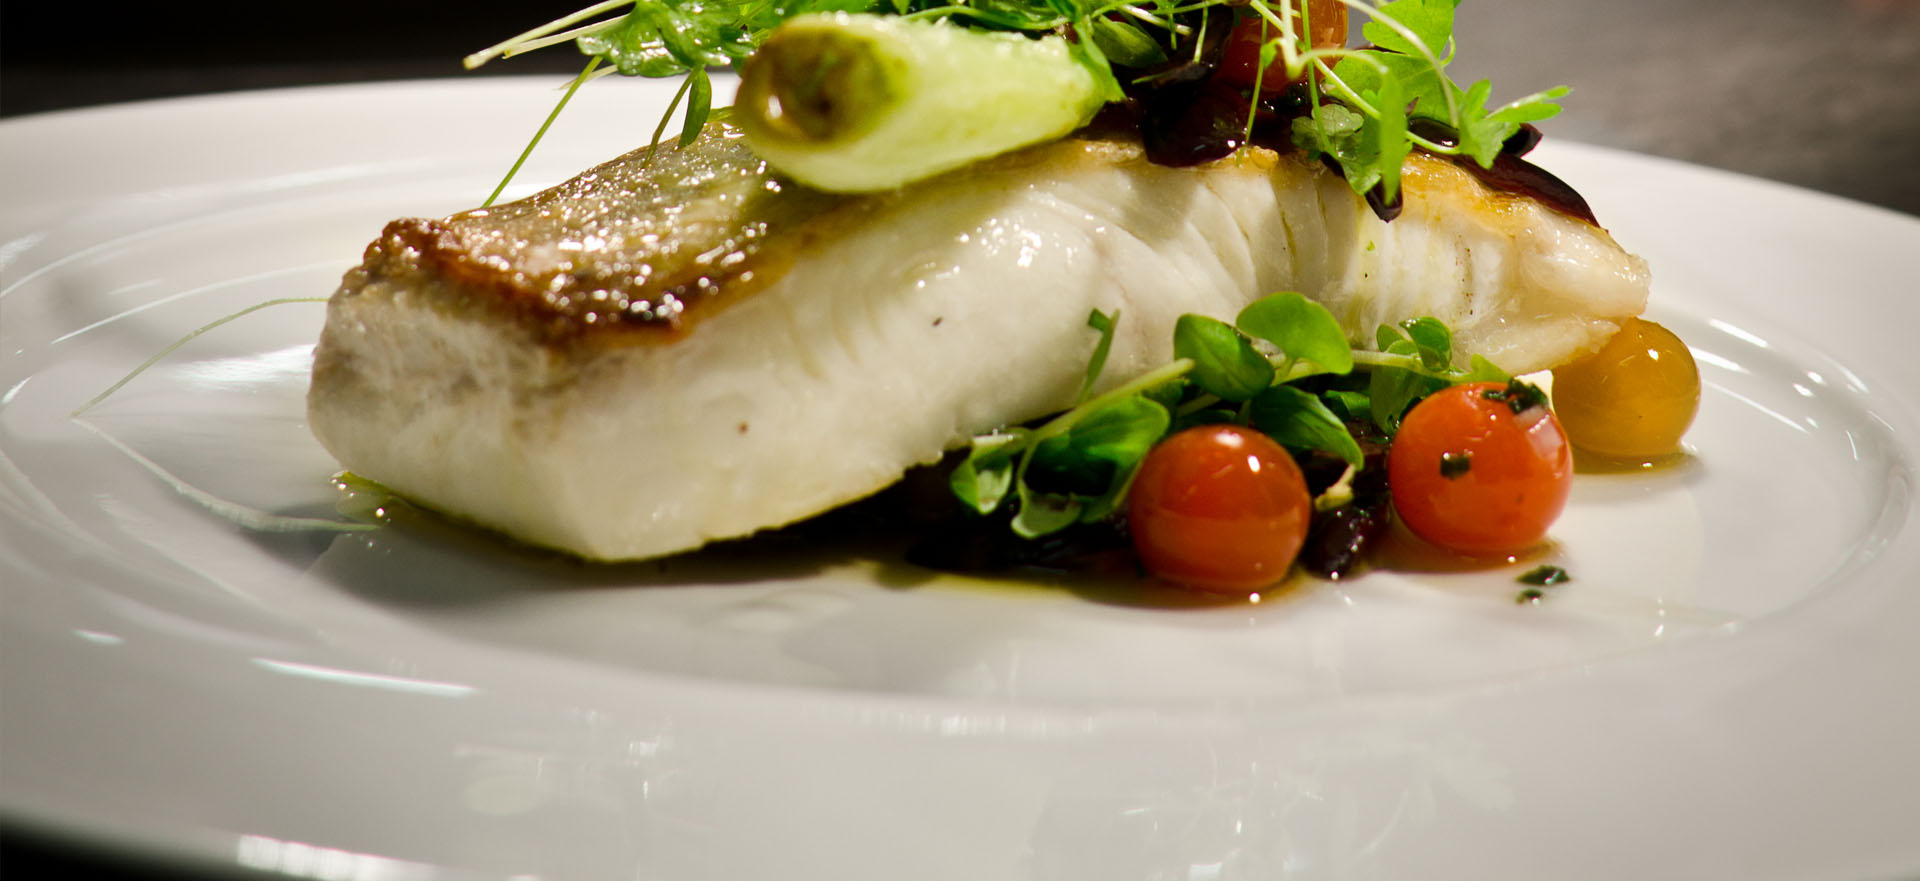 Fish Dish at Marco Pierre White Courtyard Bar and Grill, Donnybrook Dublin Ireland